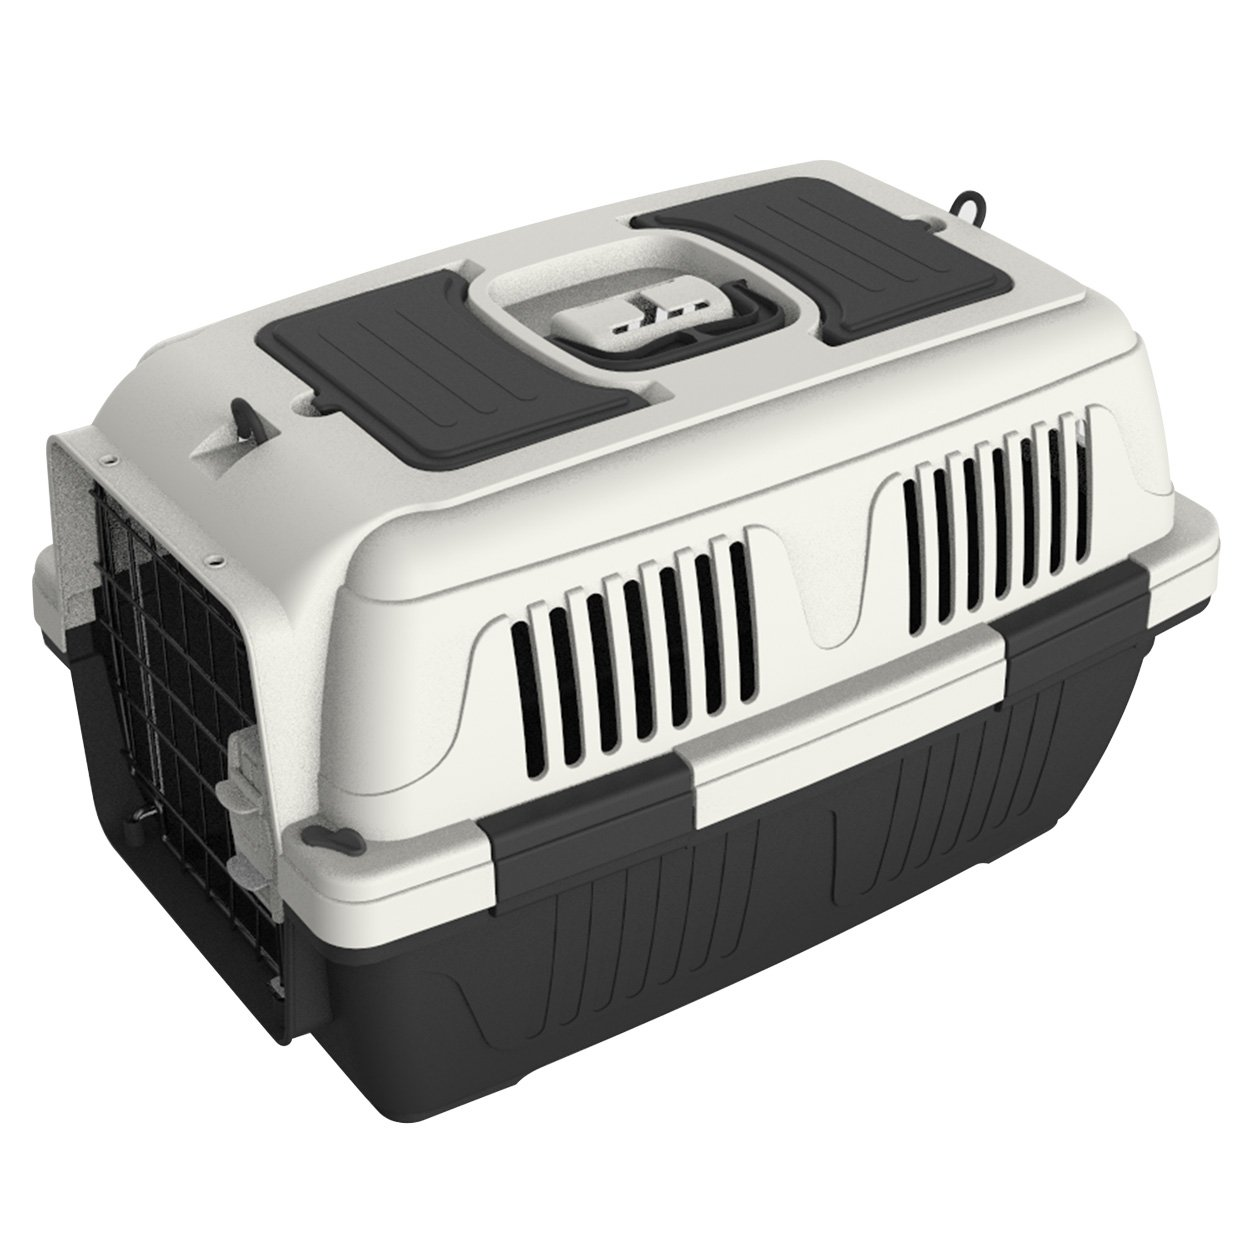 Animal Treasures PS7907 Deluxe Dog Kennel, Small/23'', Gray/White